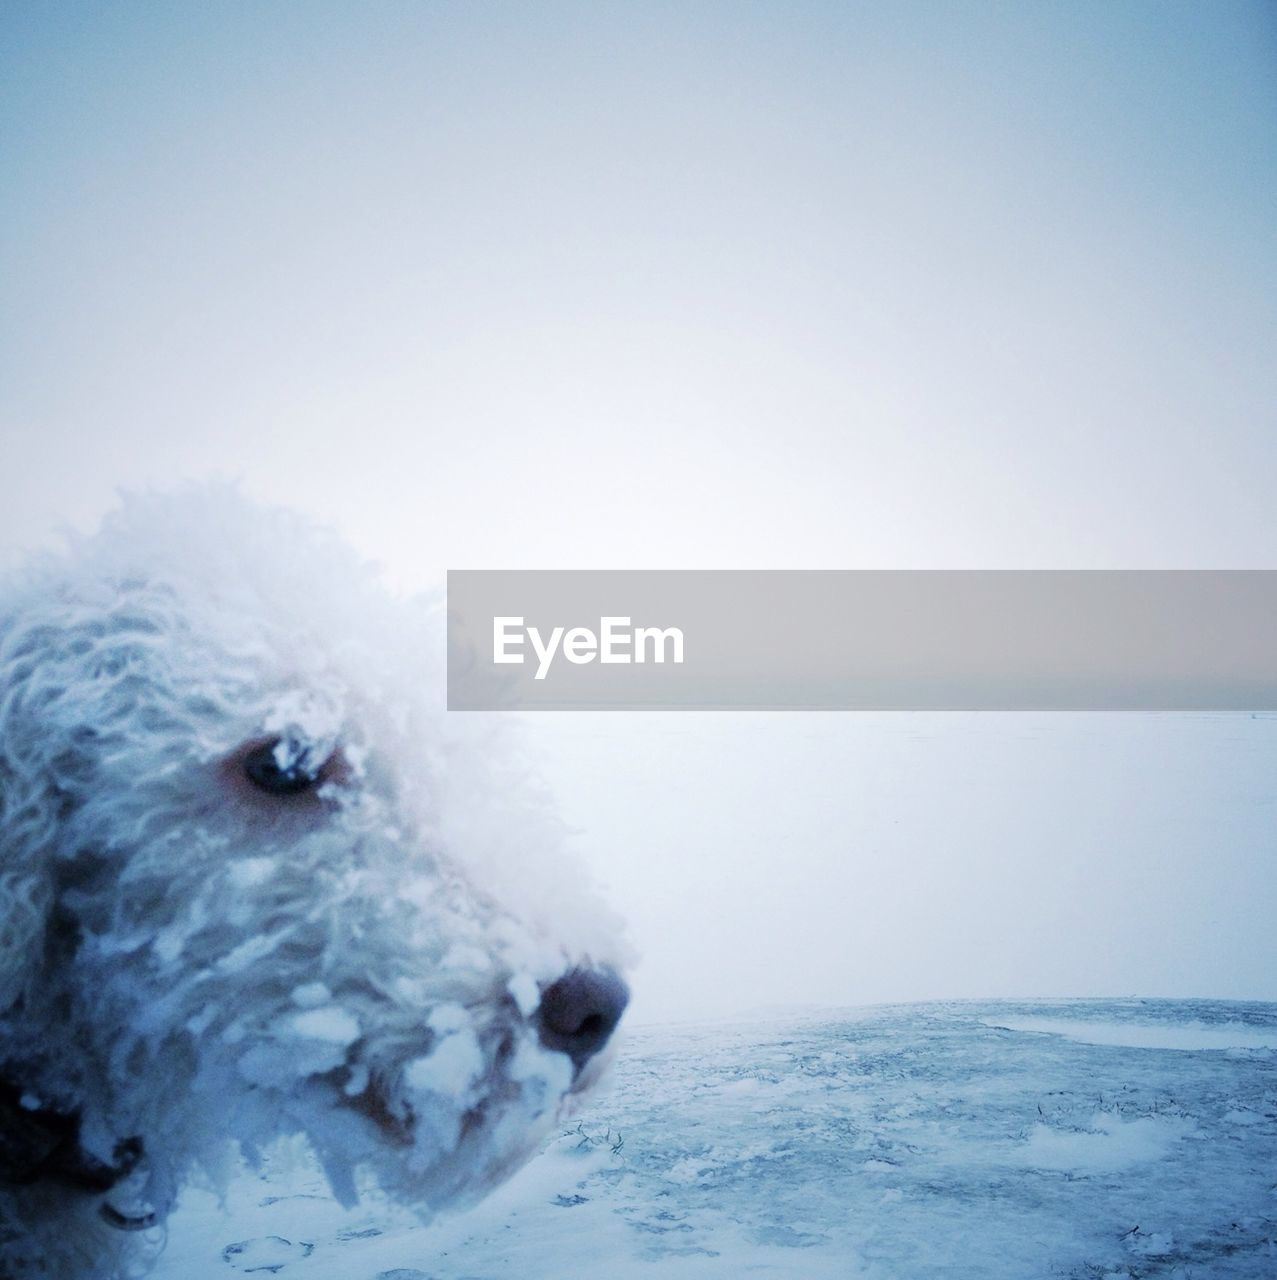 Close-up of snowed dog on landscape against clear sky